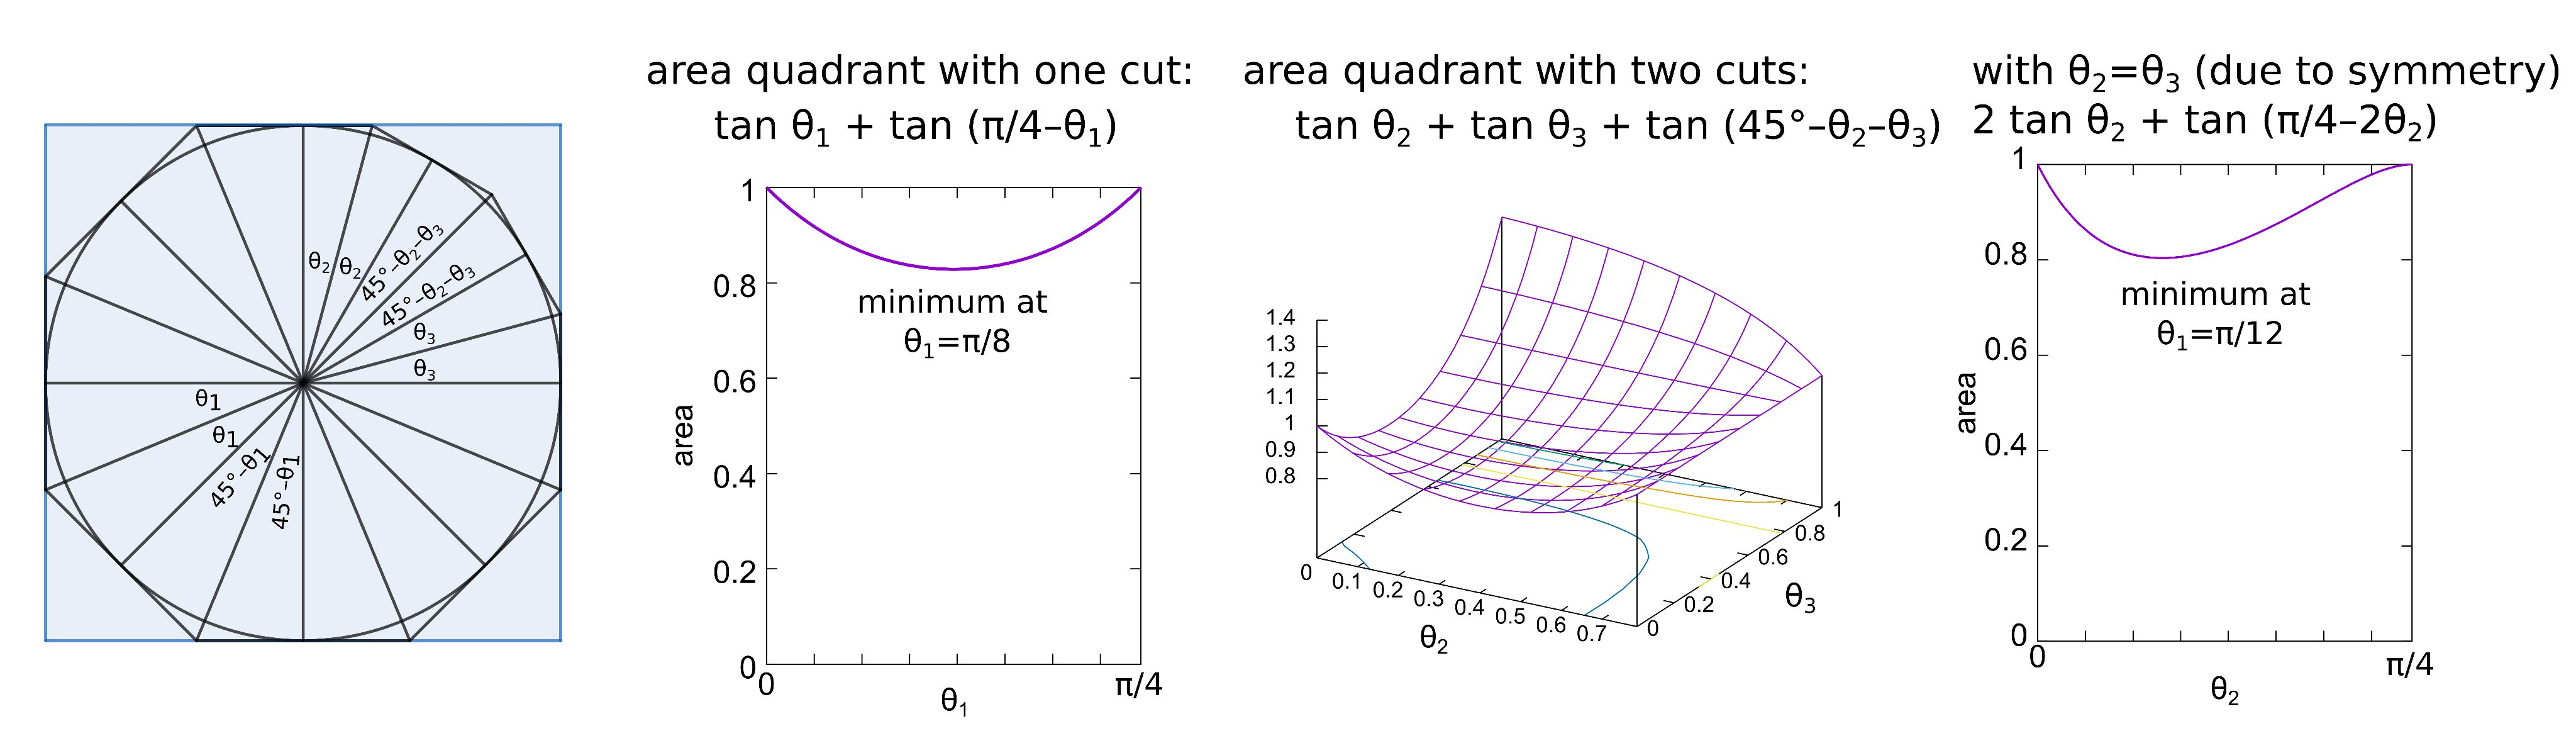 Four graphs. The first shows a nonagon inside a square, created by making three slices along three corners and two slices along the fourth. The second graph shows that single slices minimize the area when the slices occurs at a 45 degree angle with respect to the square. The third graph shows a surface plot -- the area of the square's quadrant as a function of the angular positions of two tangential cuts. The fourth graph shows the area of this quadrant is minimized when the two cuts make 30 degree angles with each other and the square.